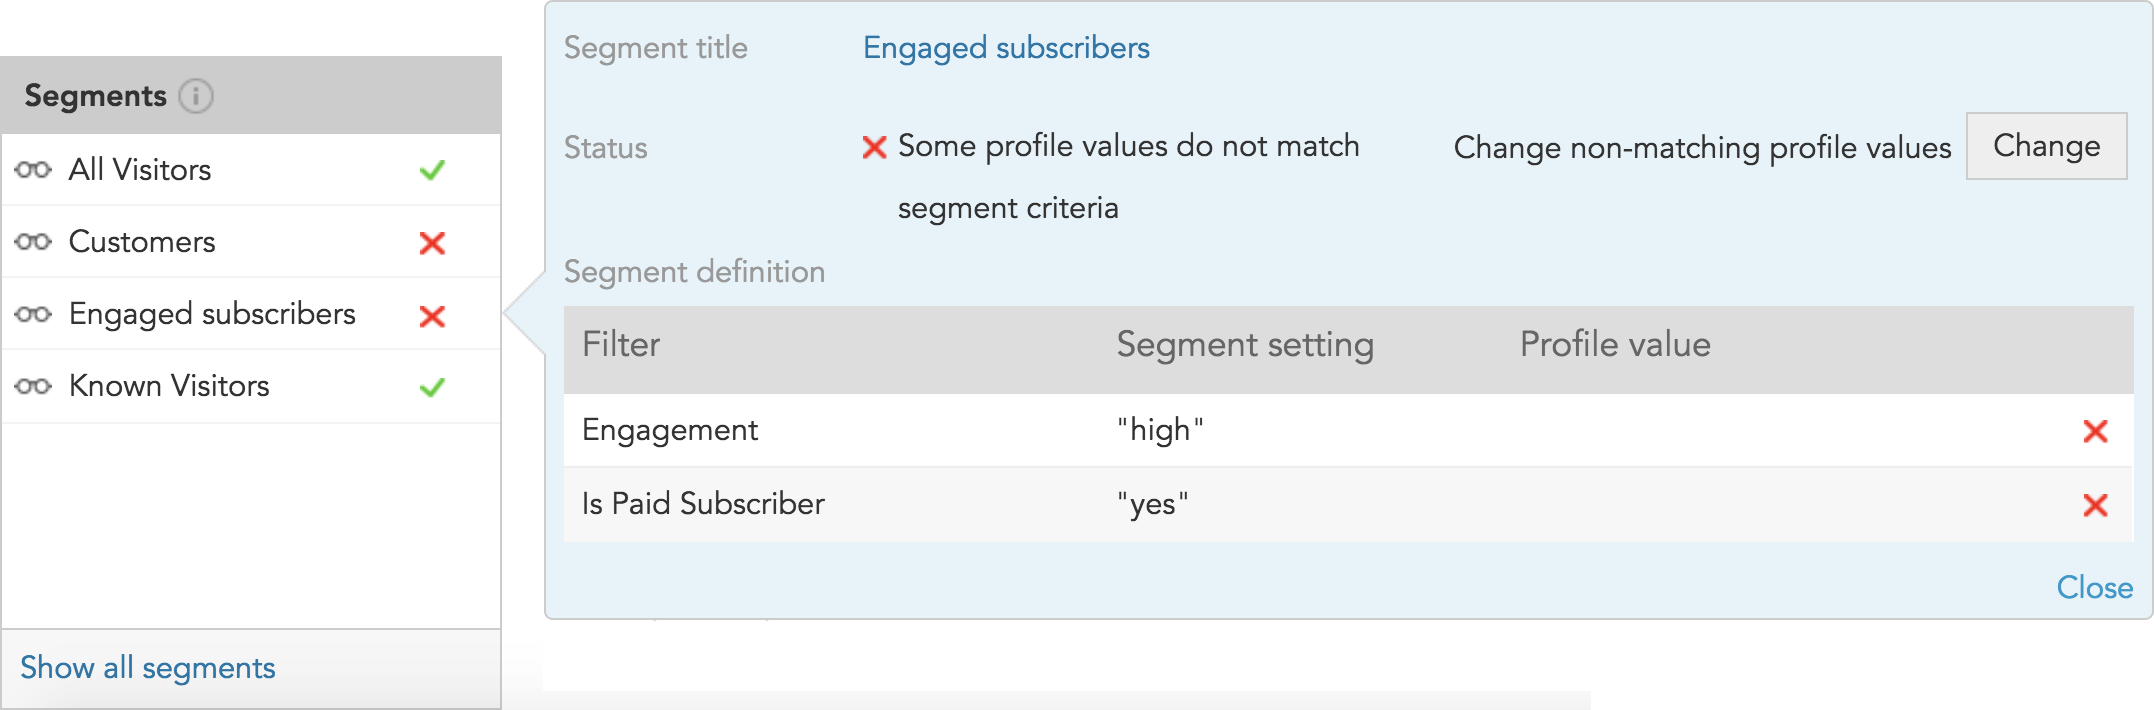 How do I use the BlueConic simulator to see customer segments?